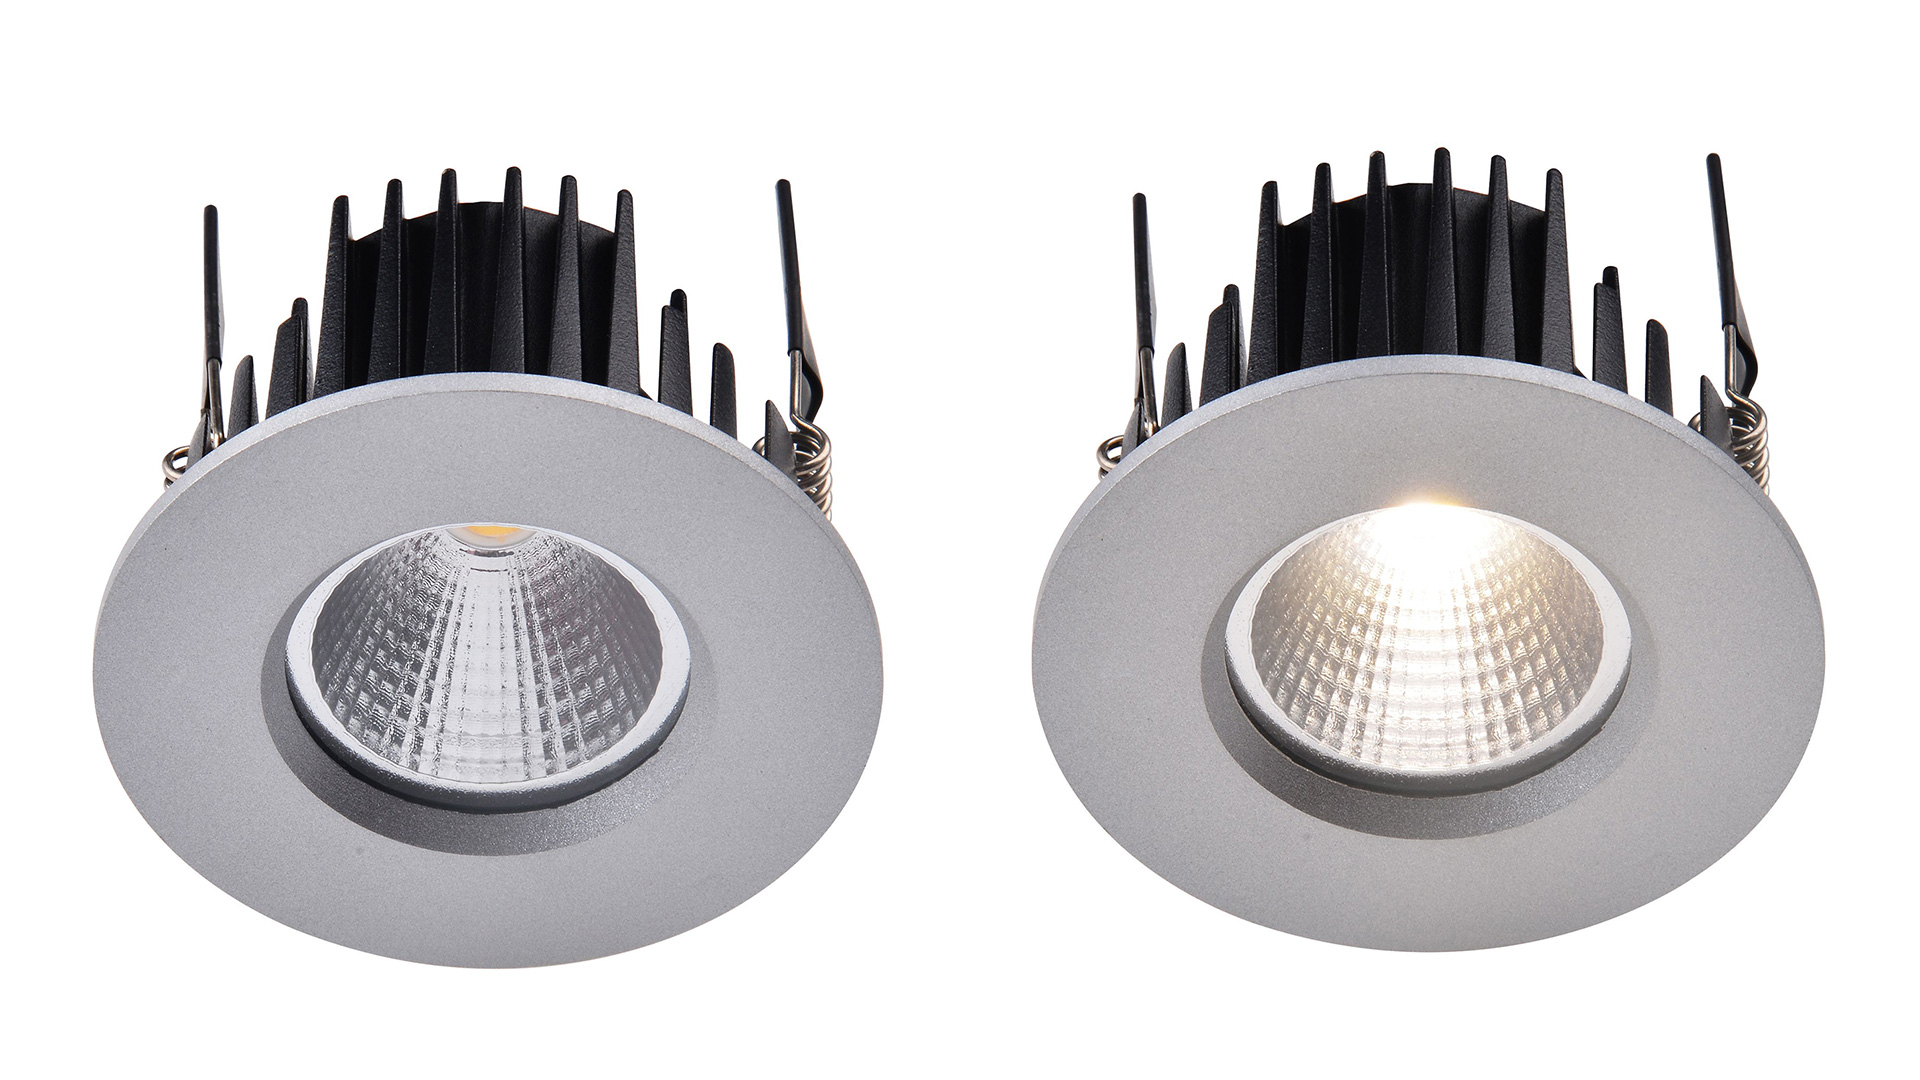 IP65 Su Geçirmez 8 Watt LED Downlight